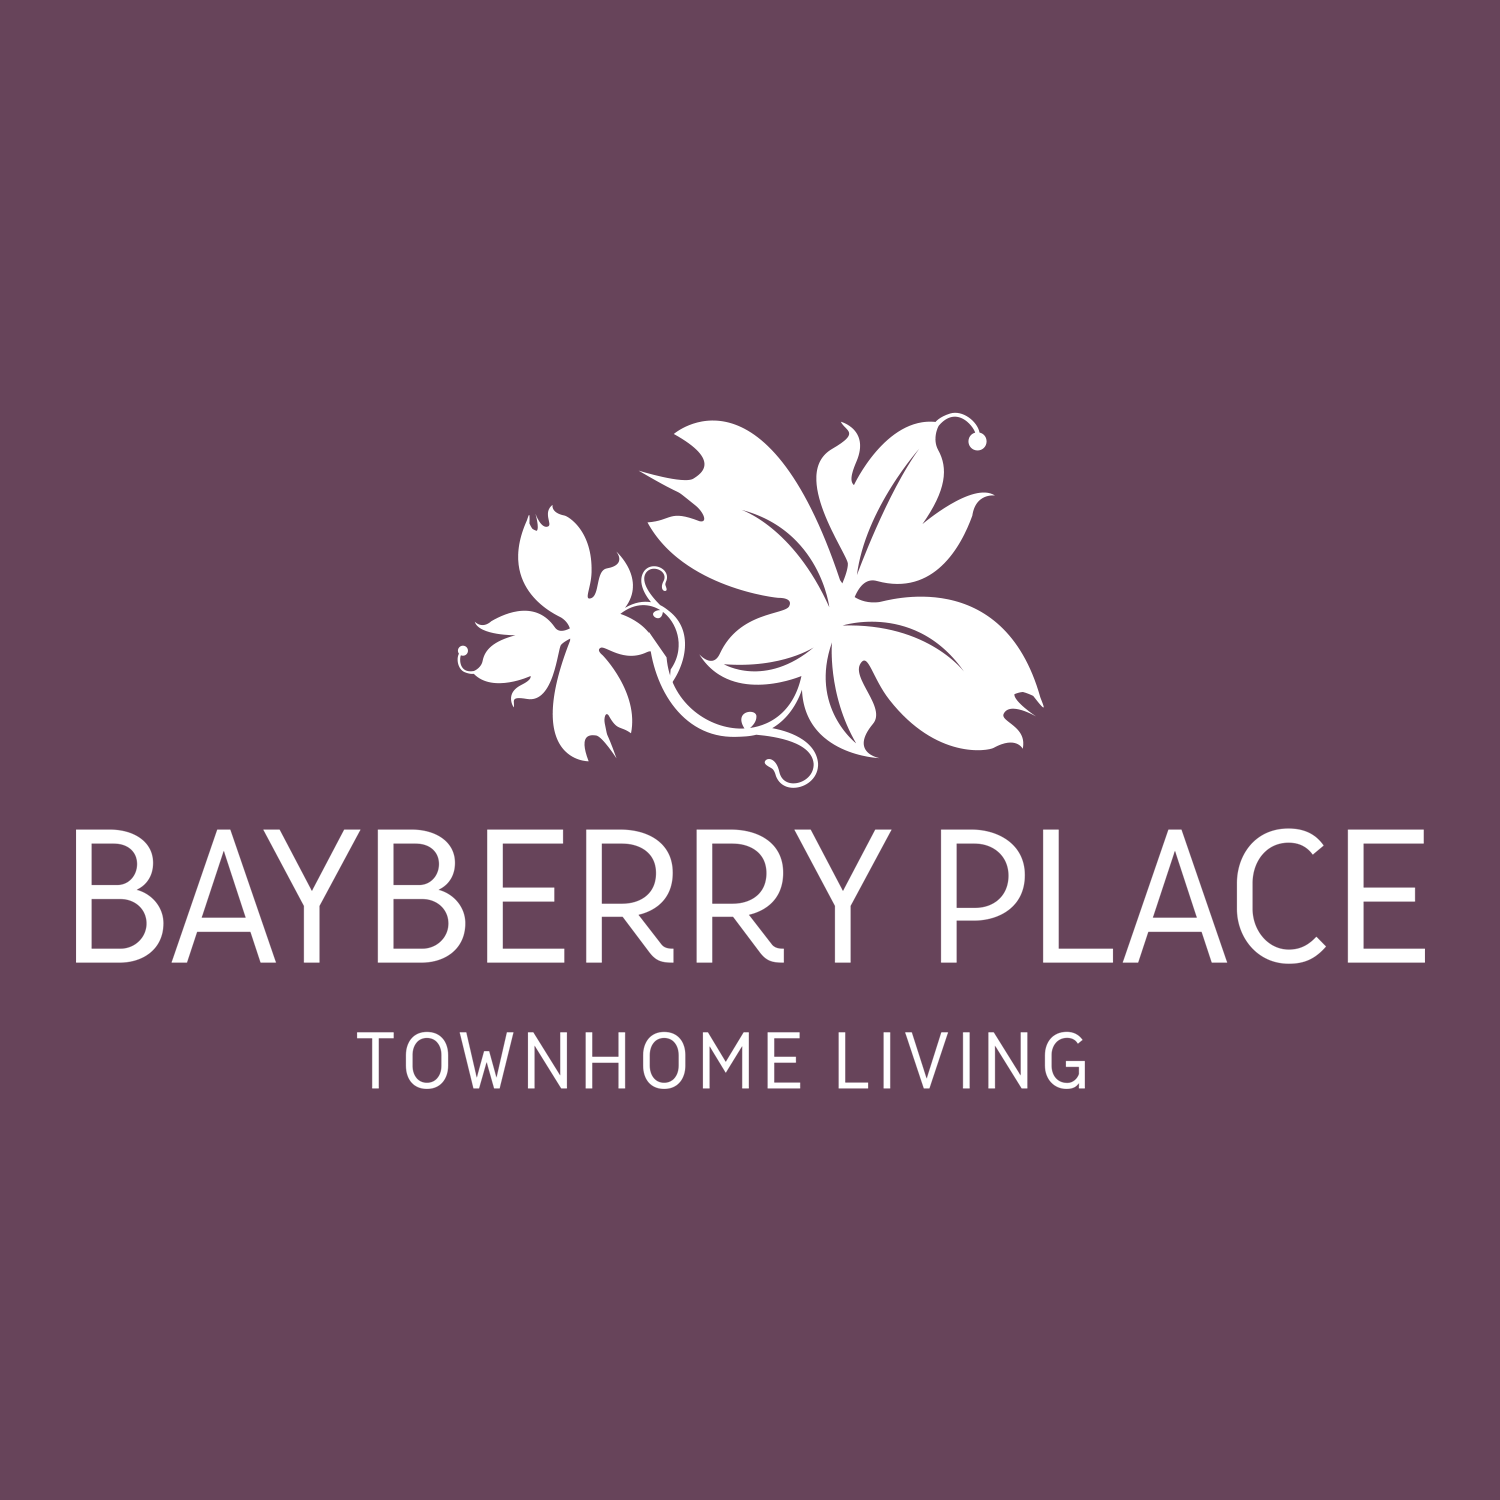 Bayberry Place Townhomes image 3